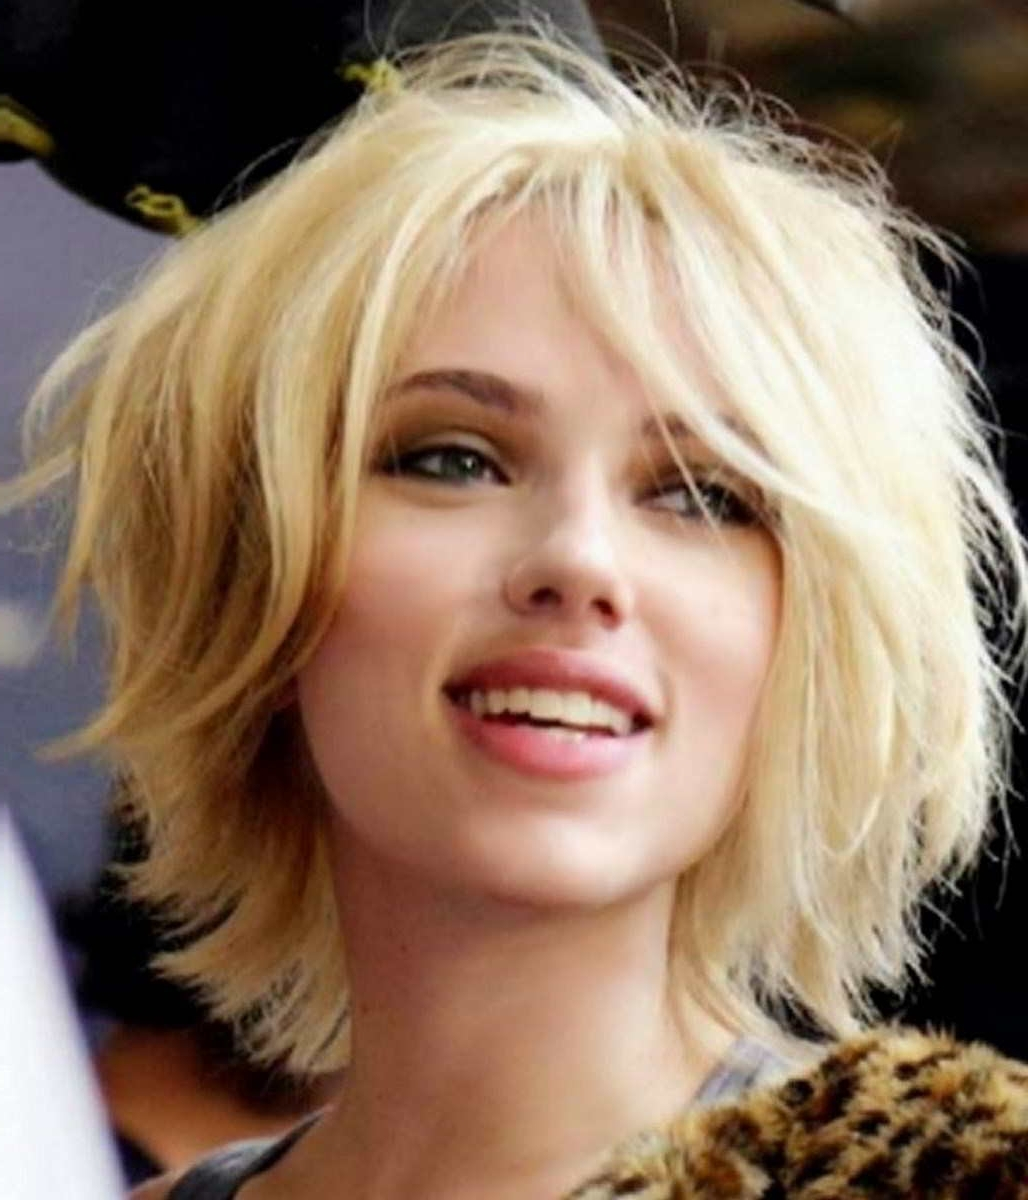 Popular Shaggy Hairstyles For Thick Hair Pertaining To Short Shaggy Hairstyles For Thick Hair: Popular Short Shaggy (View 11 of 15)